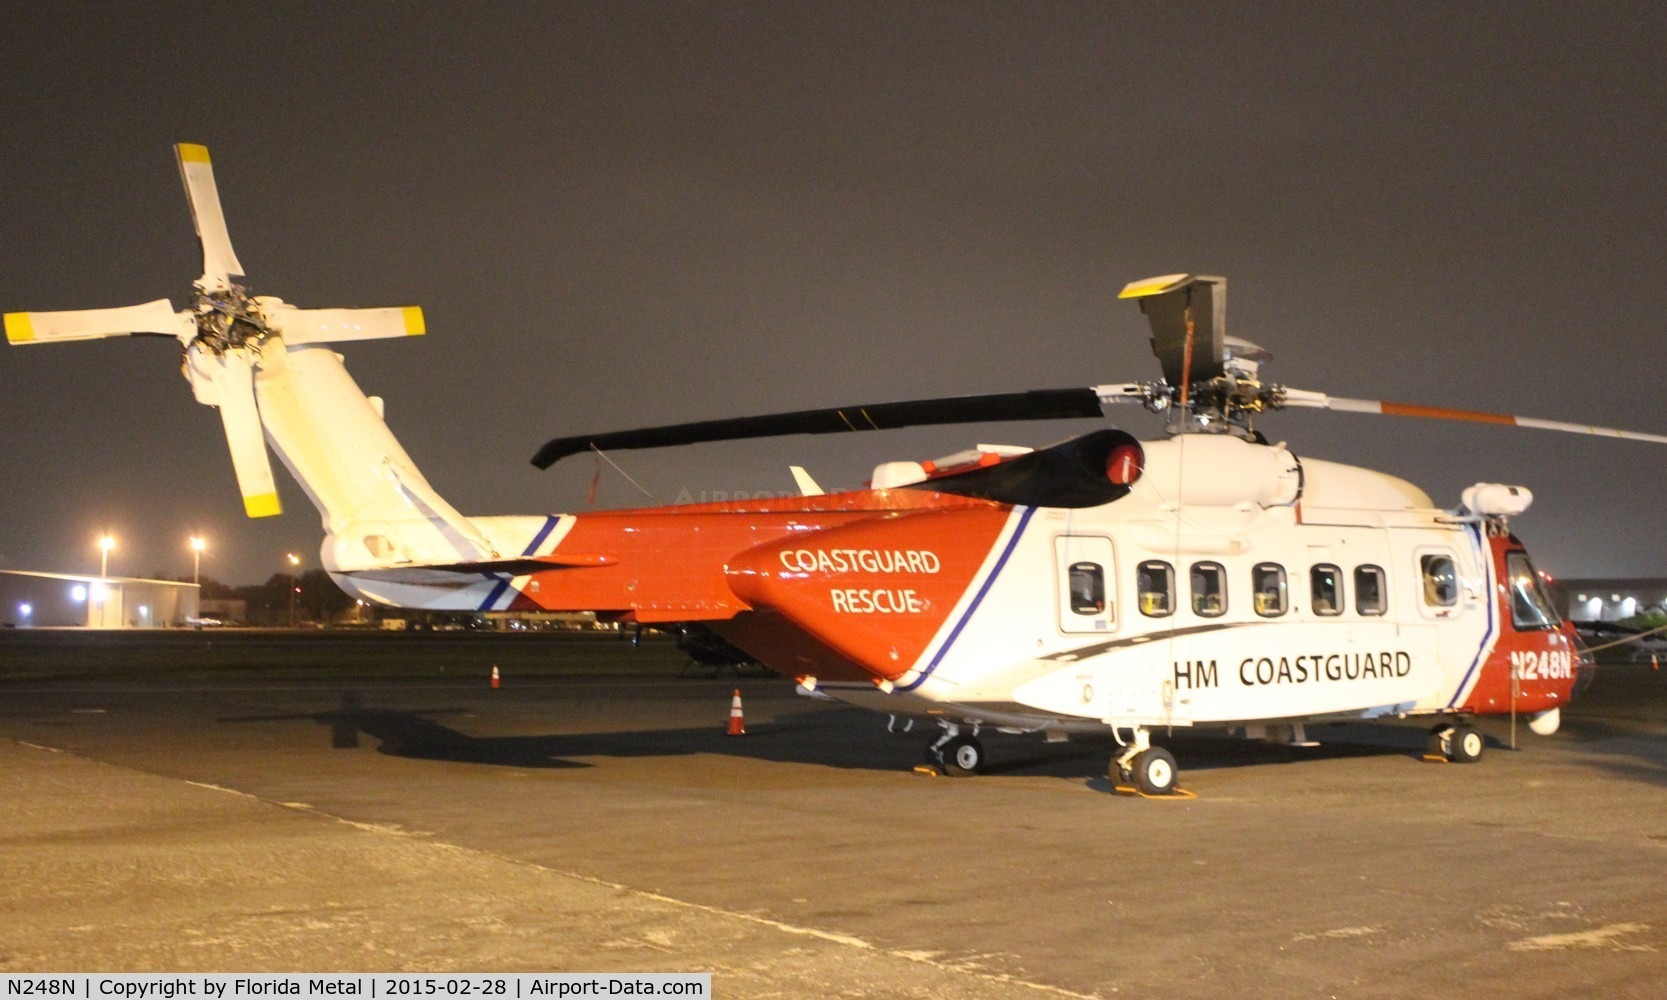 N248N, 2014 Sikorsky S-92A C/N 920248, HMS Coast Guard (UK) S-92